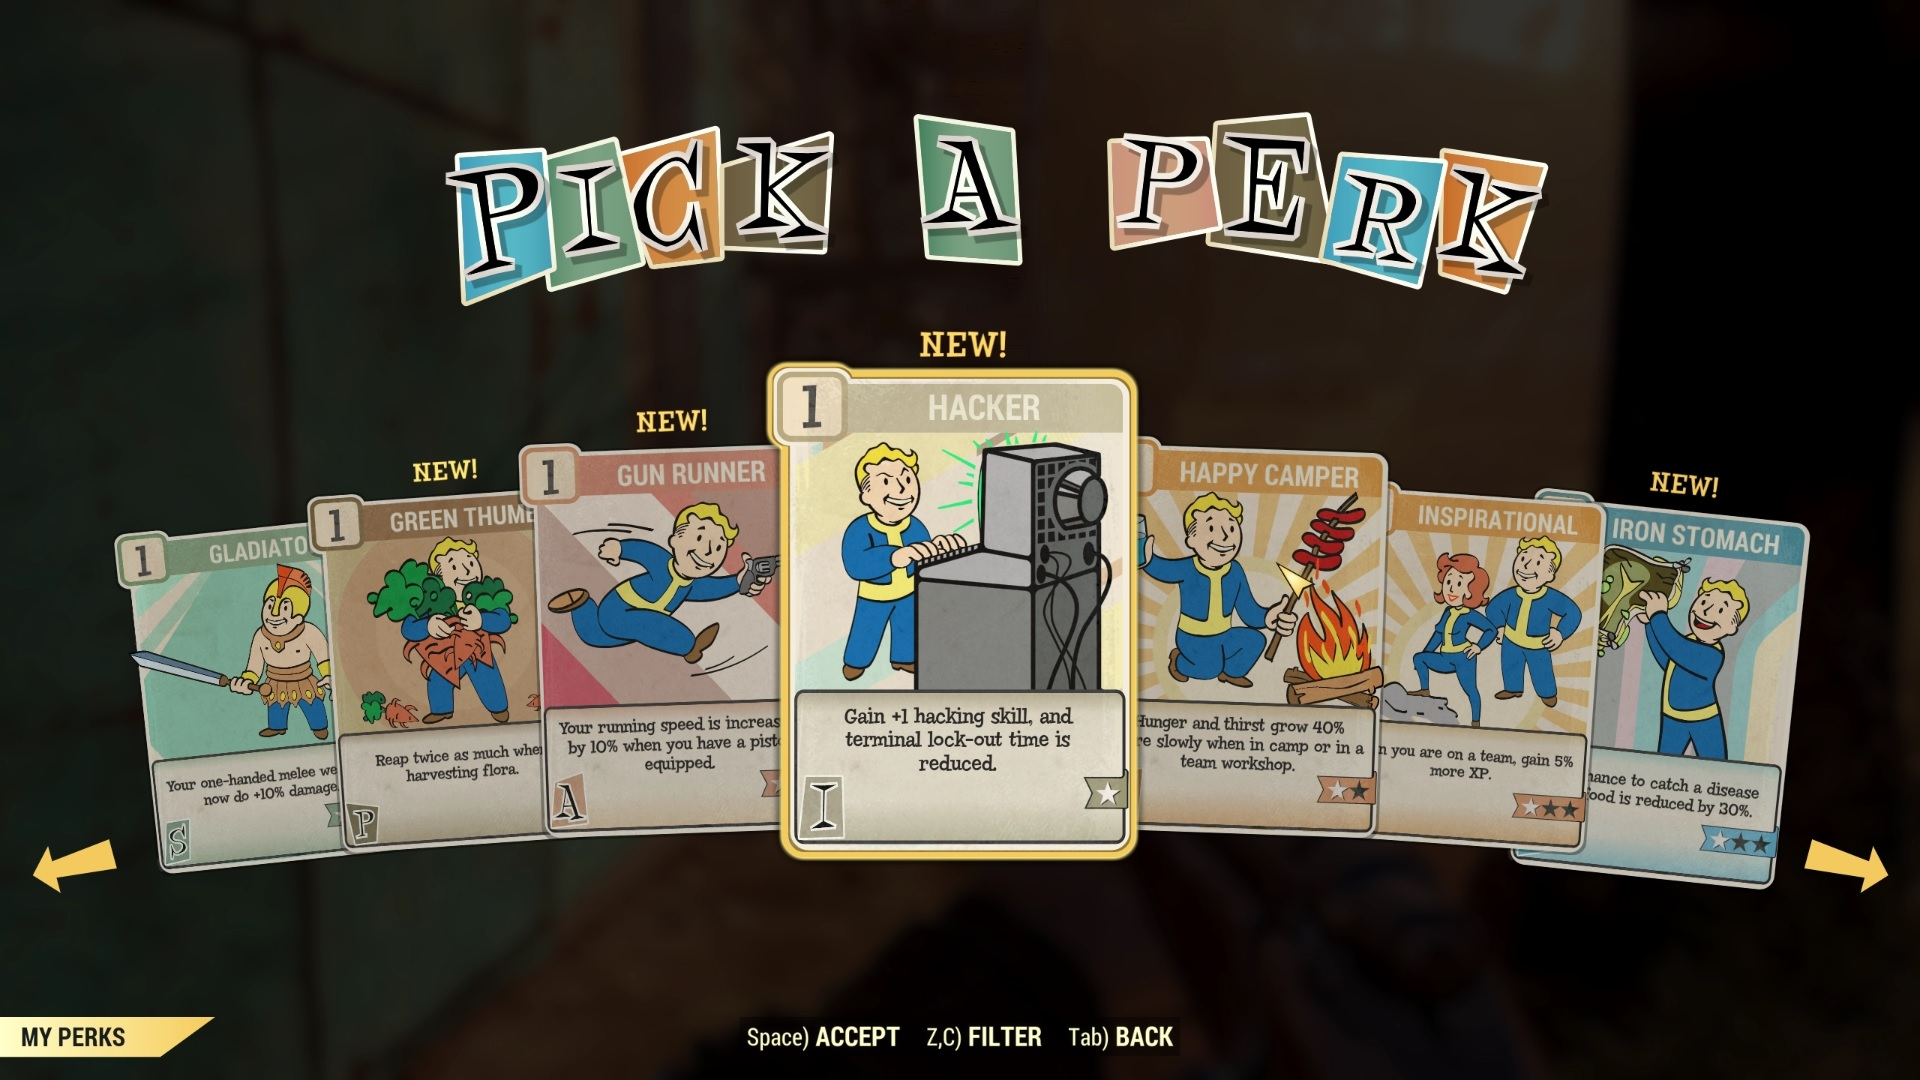 The hacker perk card.